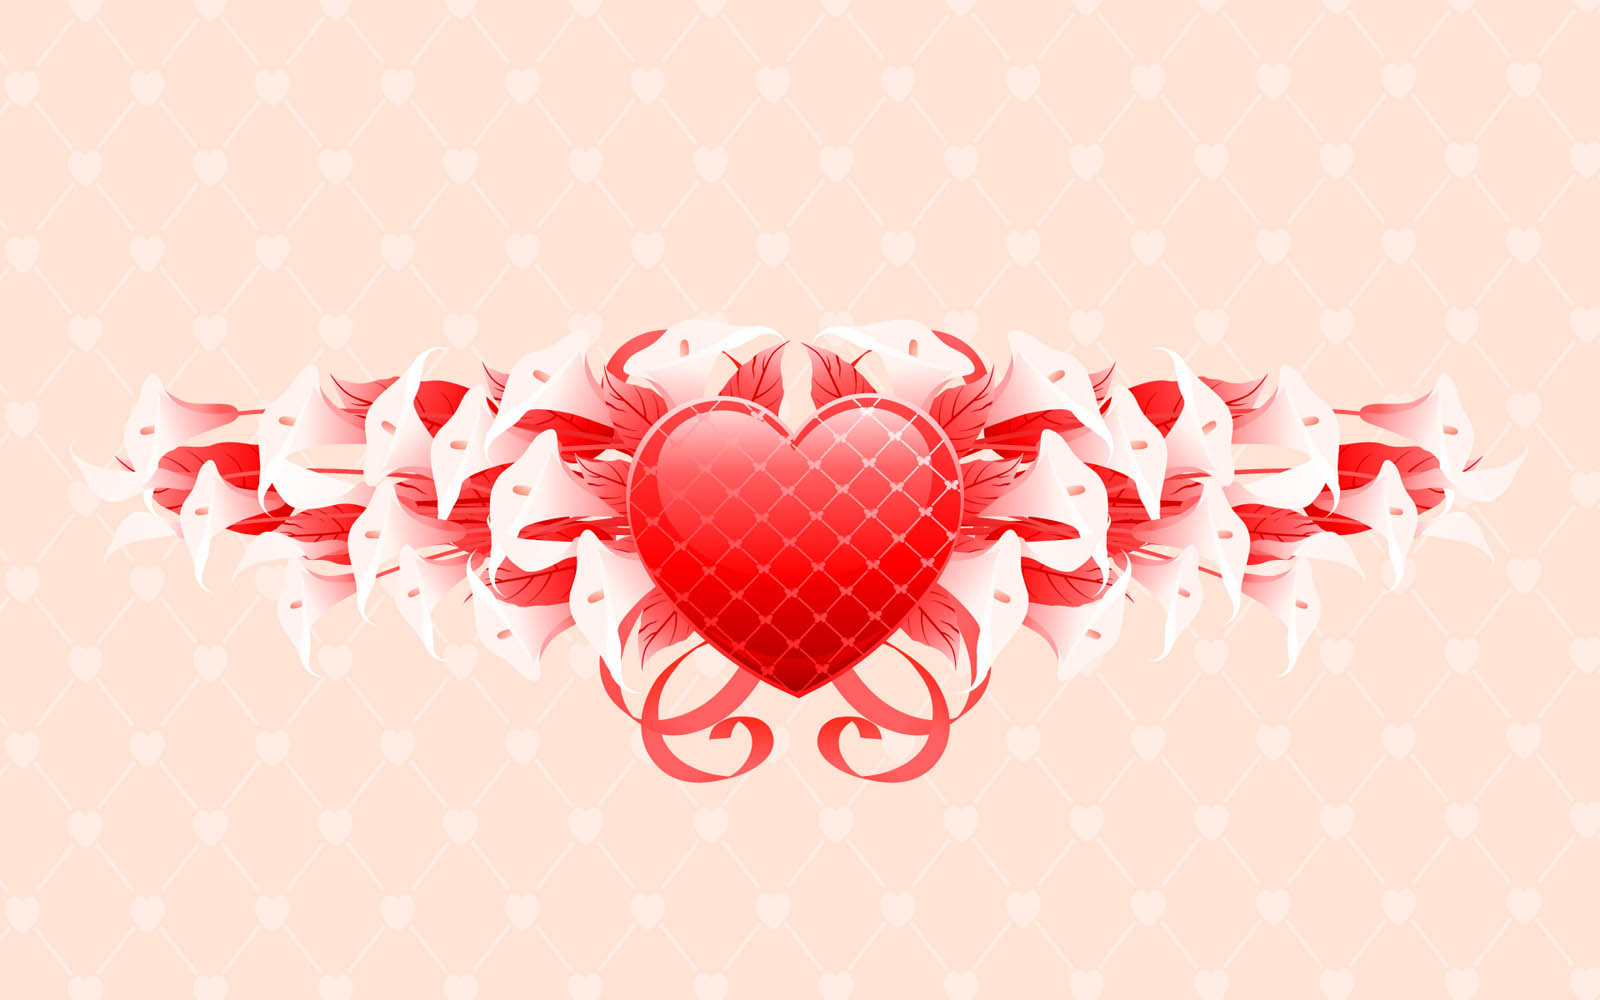 Love Wallpaper Latest : wallpapers: Vector Love Wallpapers